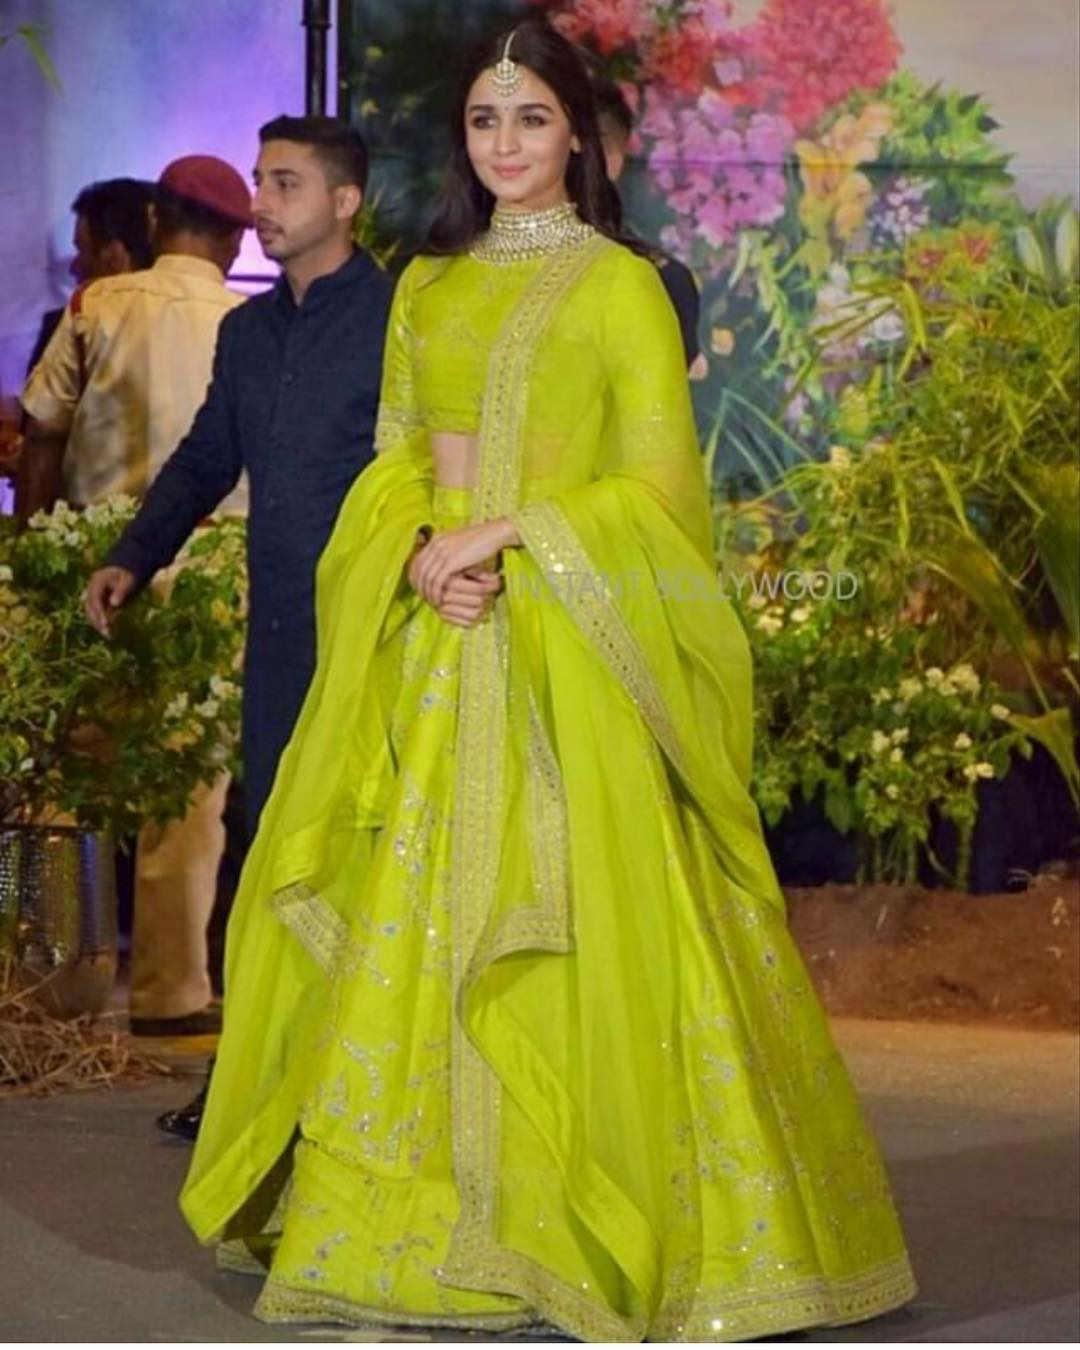 39-1 Sonam Kapoor Wedding Pics - Engagement and Complete Wedding Pictures